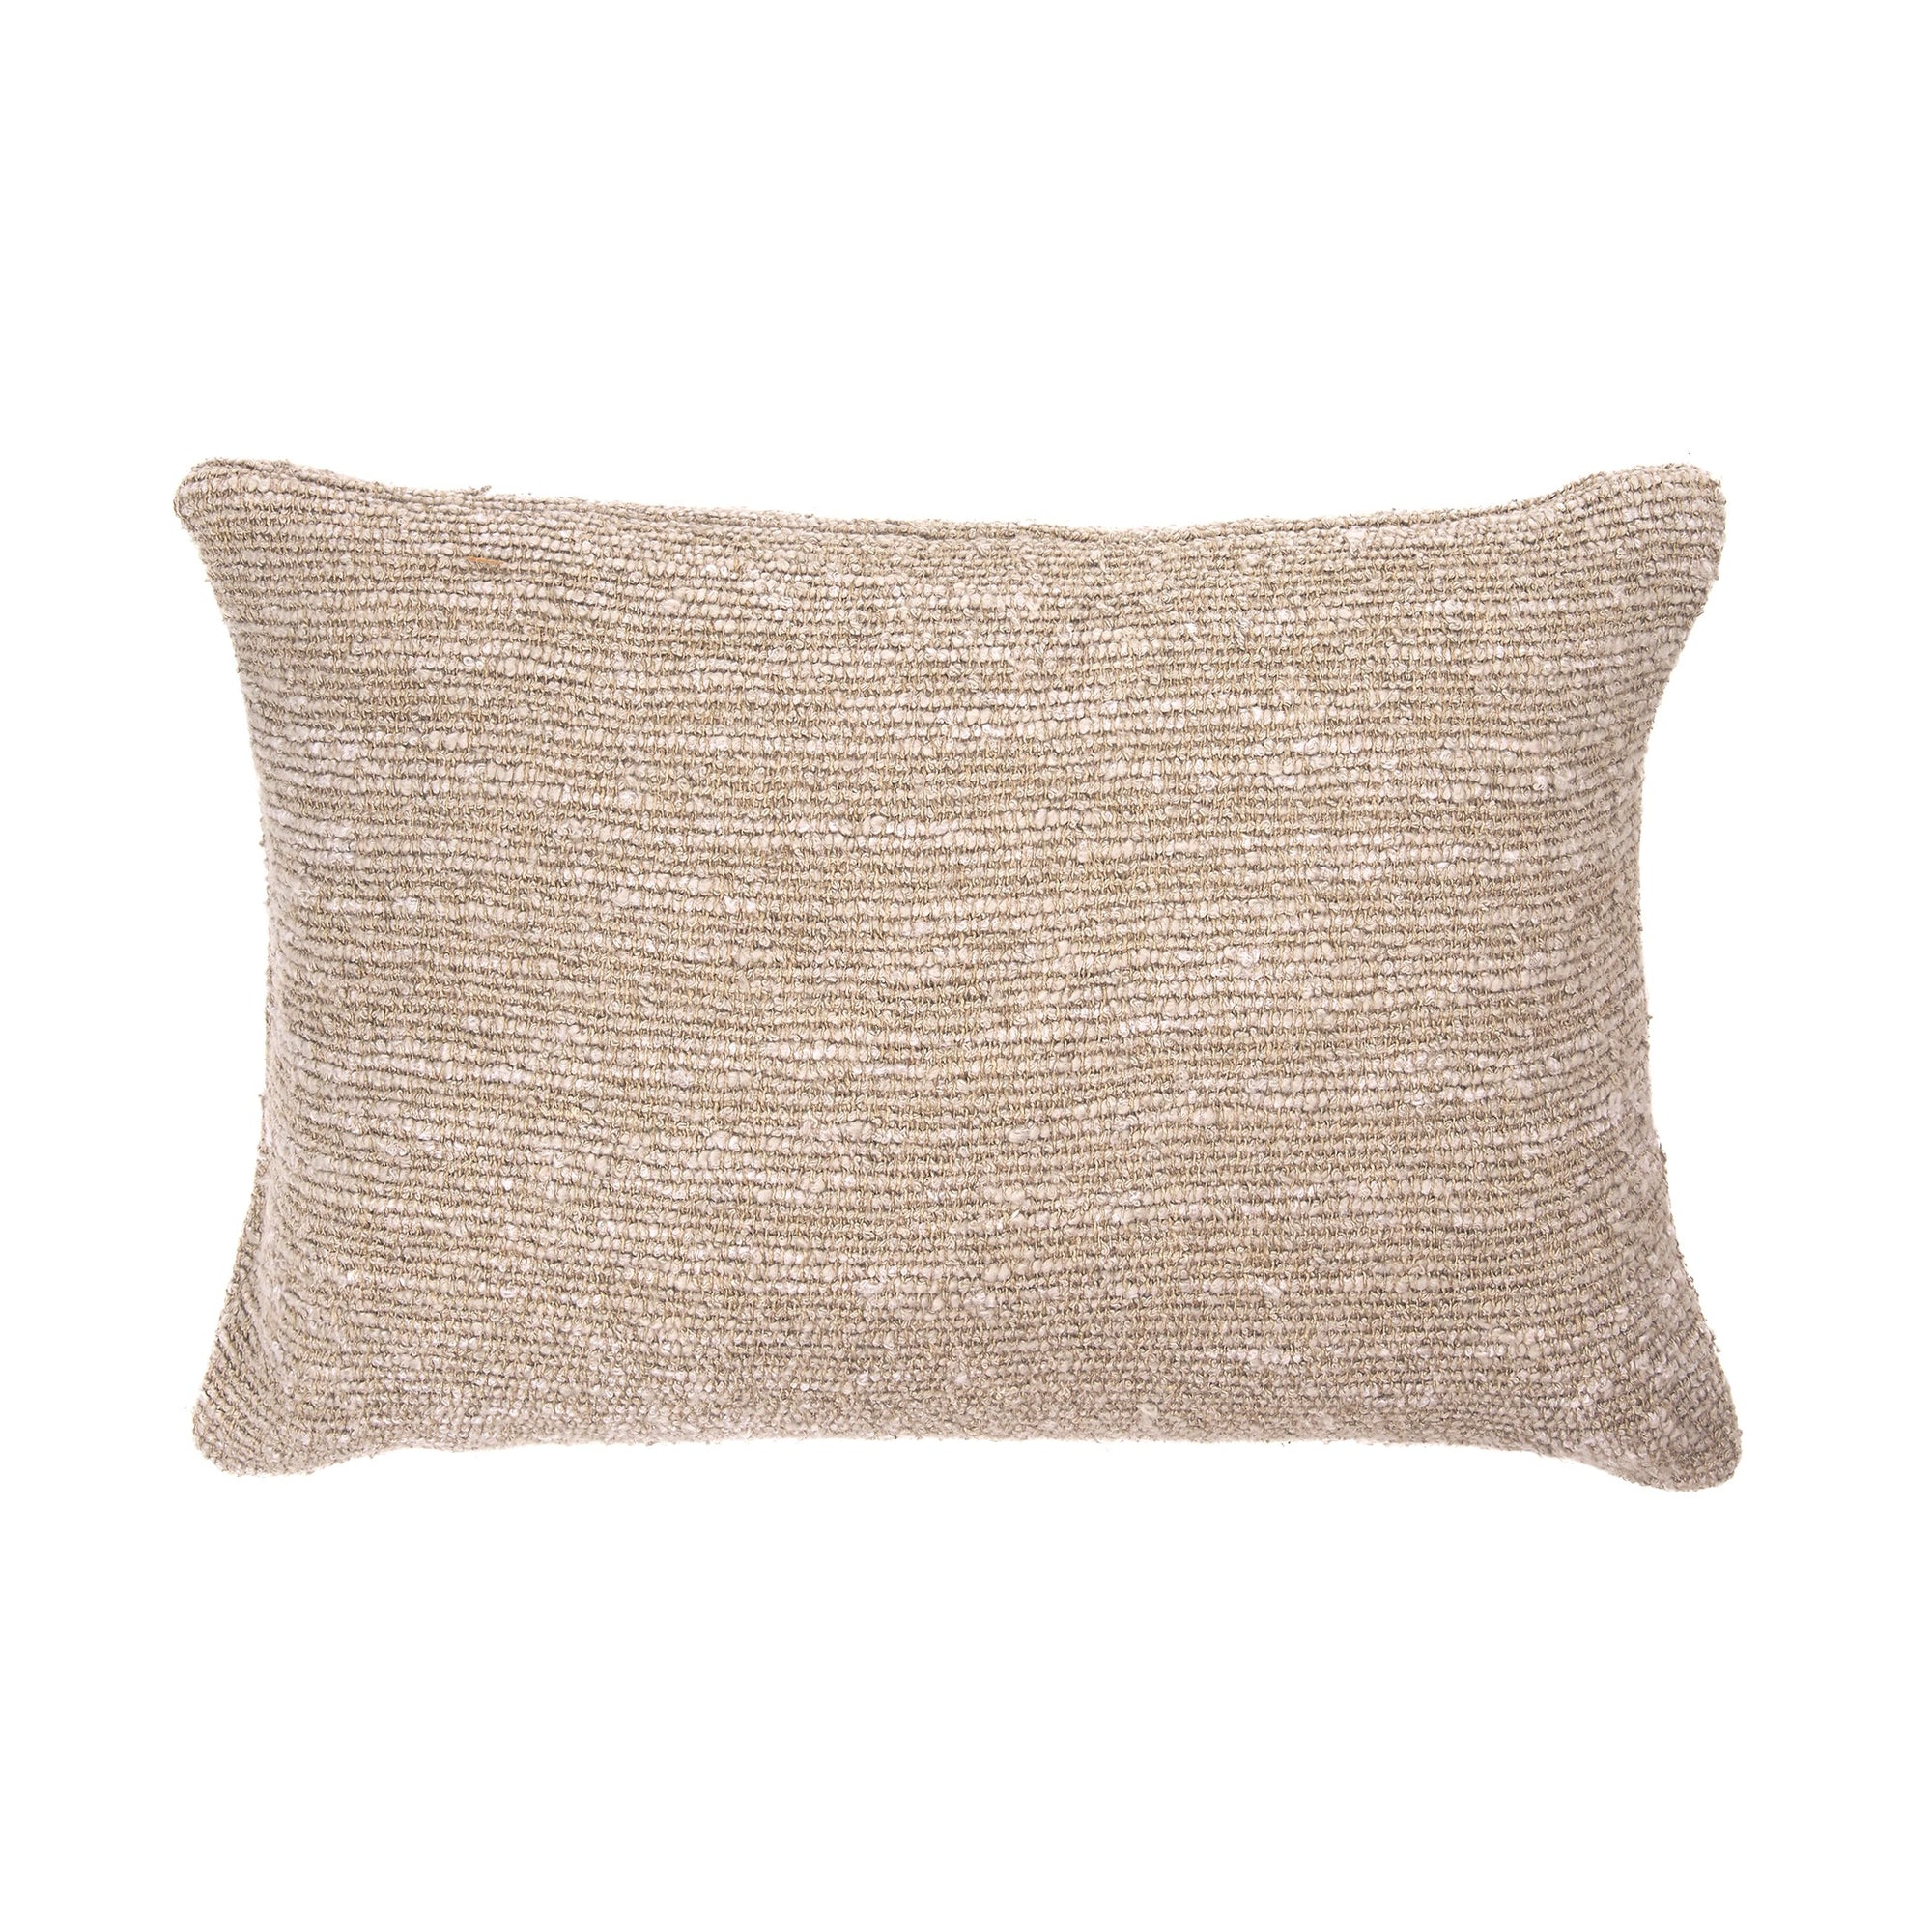 Oat Nomad cushion